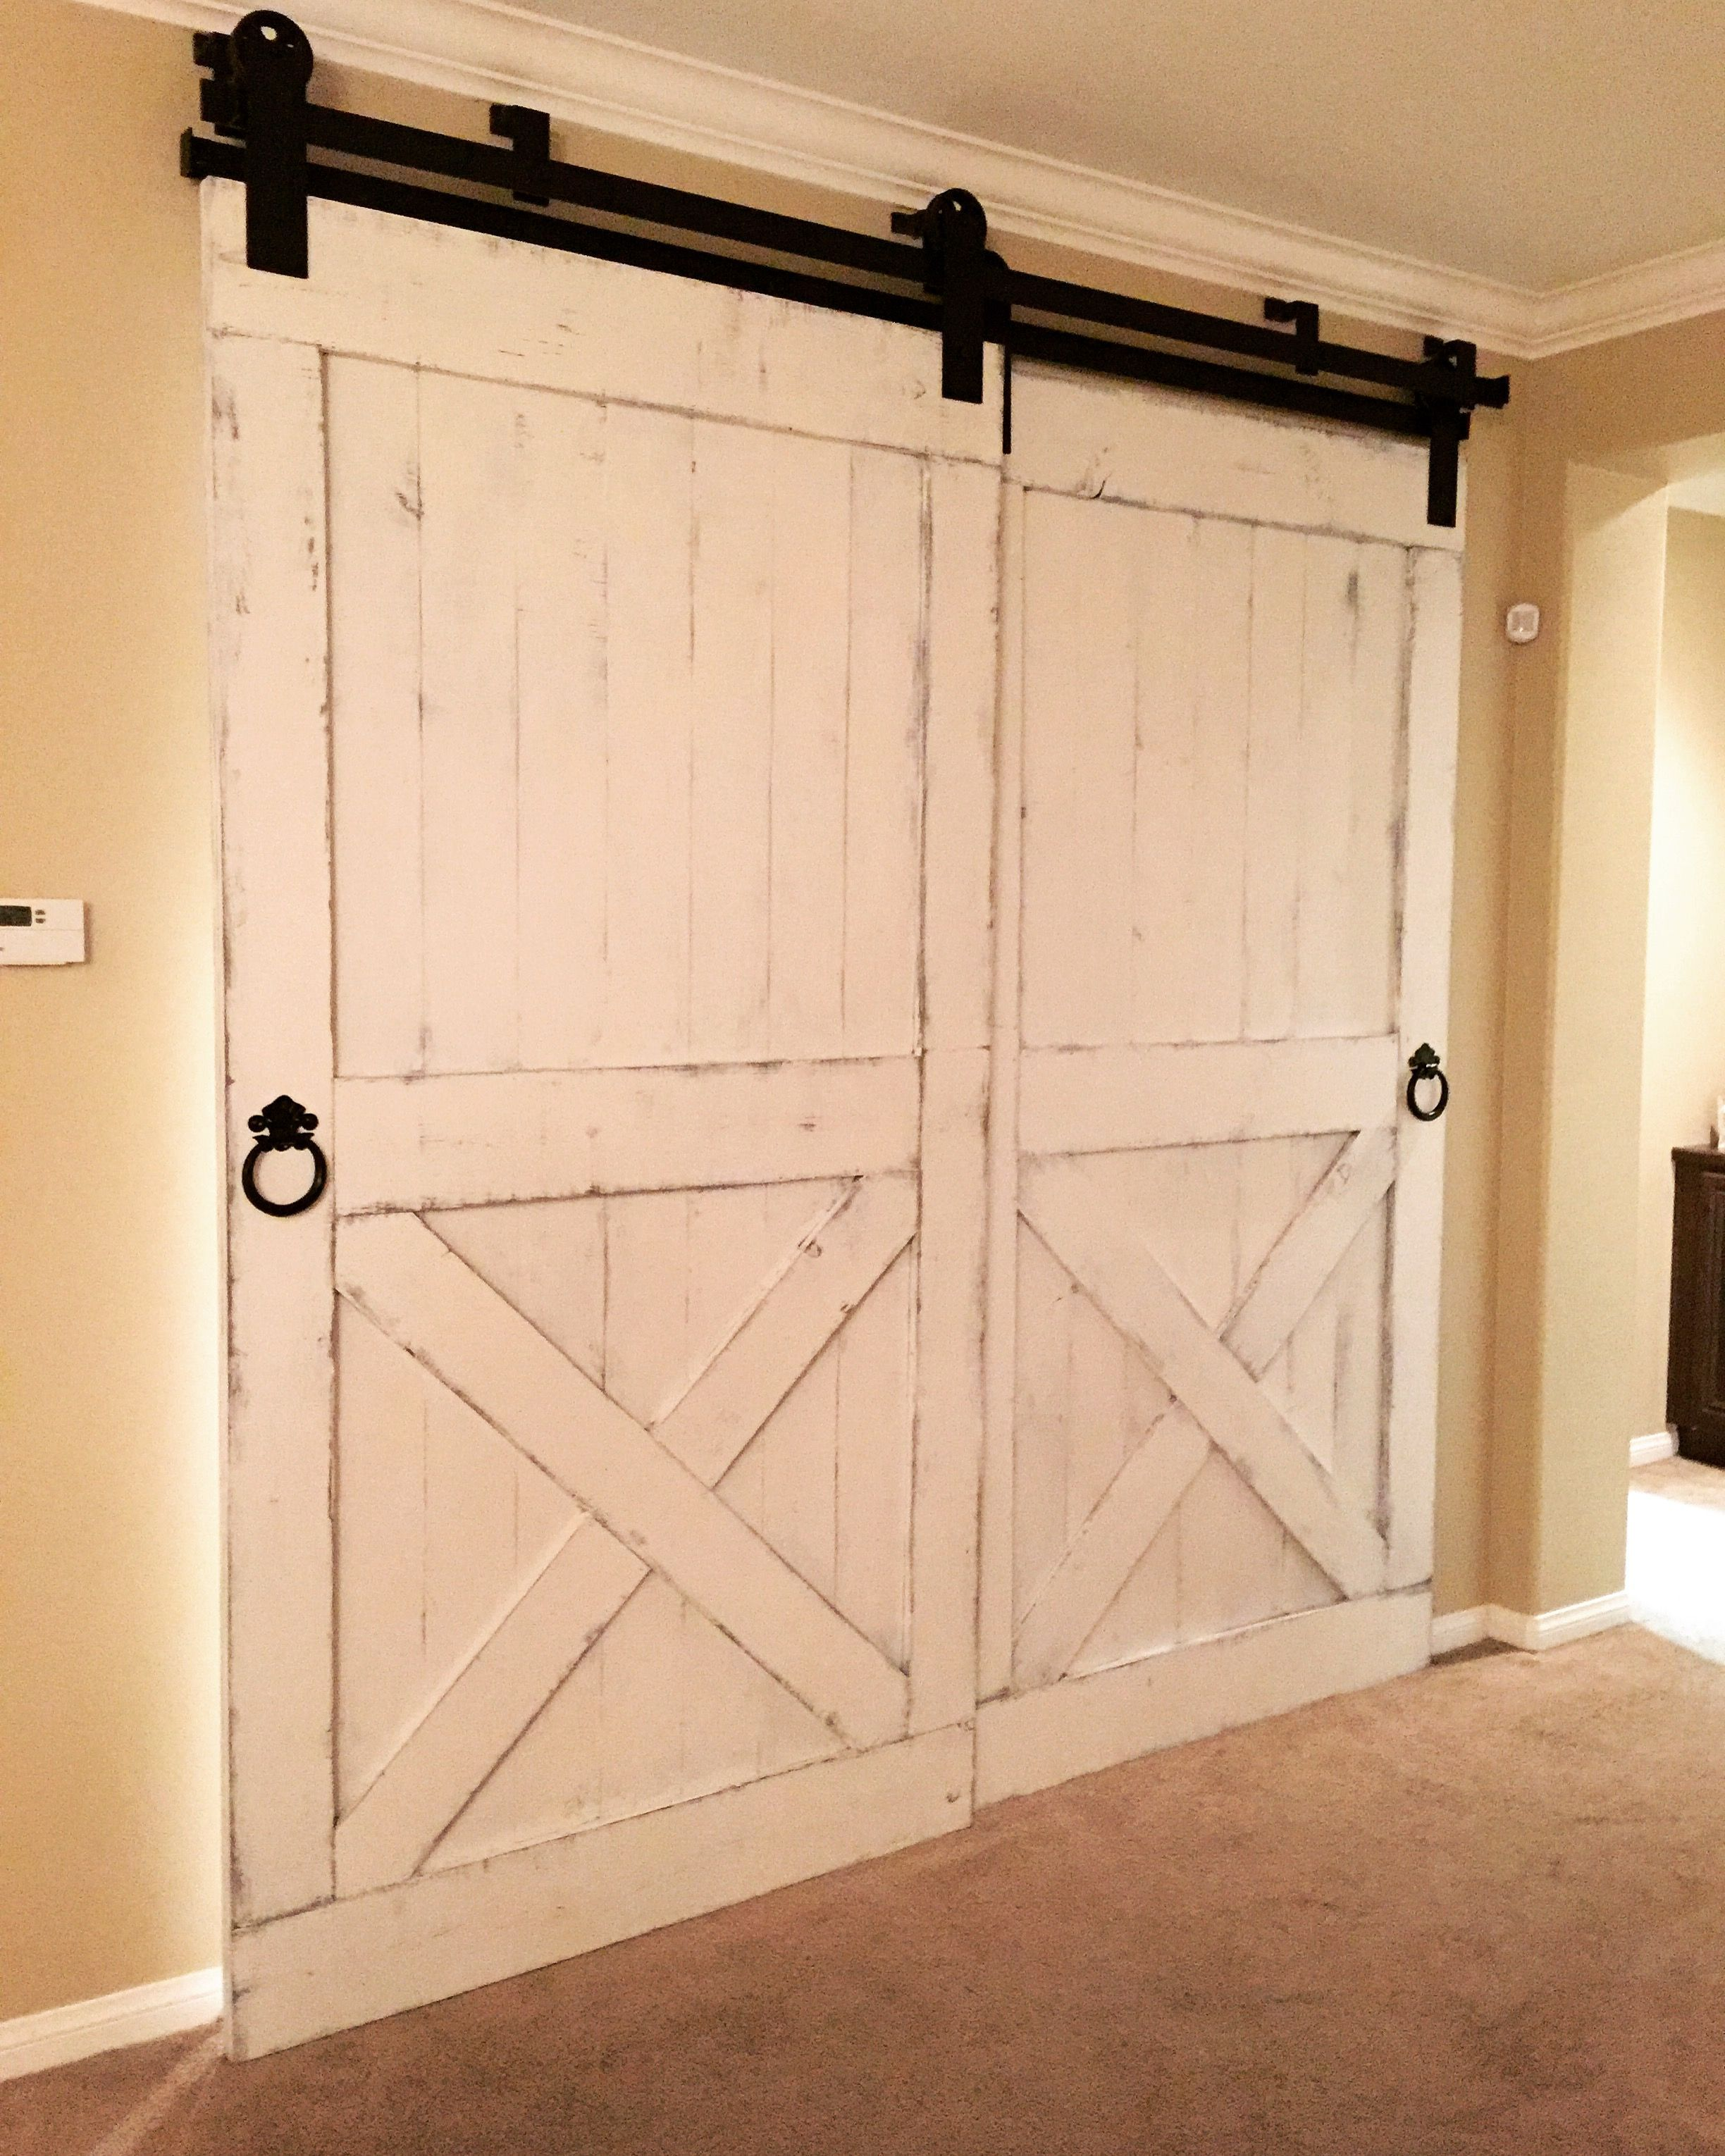 Distressed White Barn Doors With Byp Hardware For A Bar